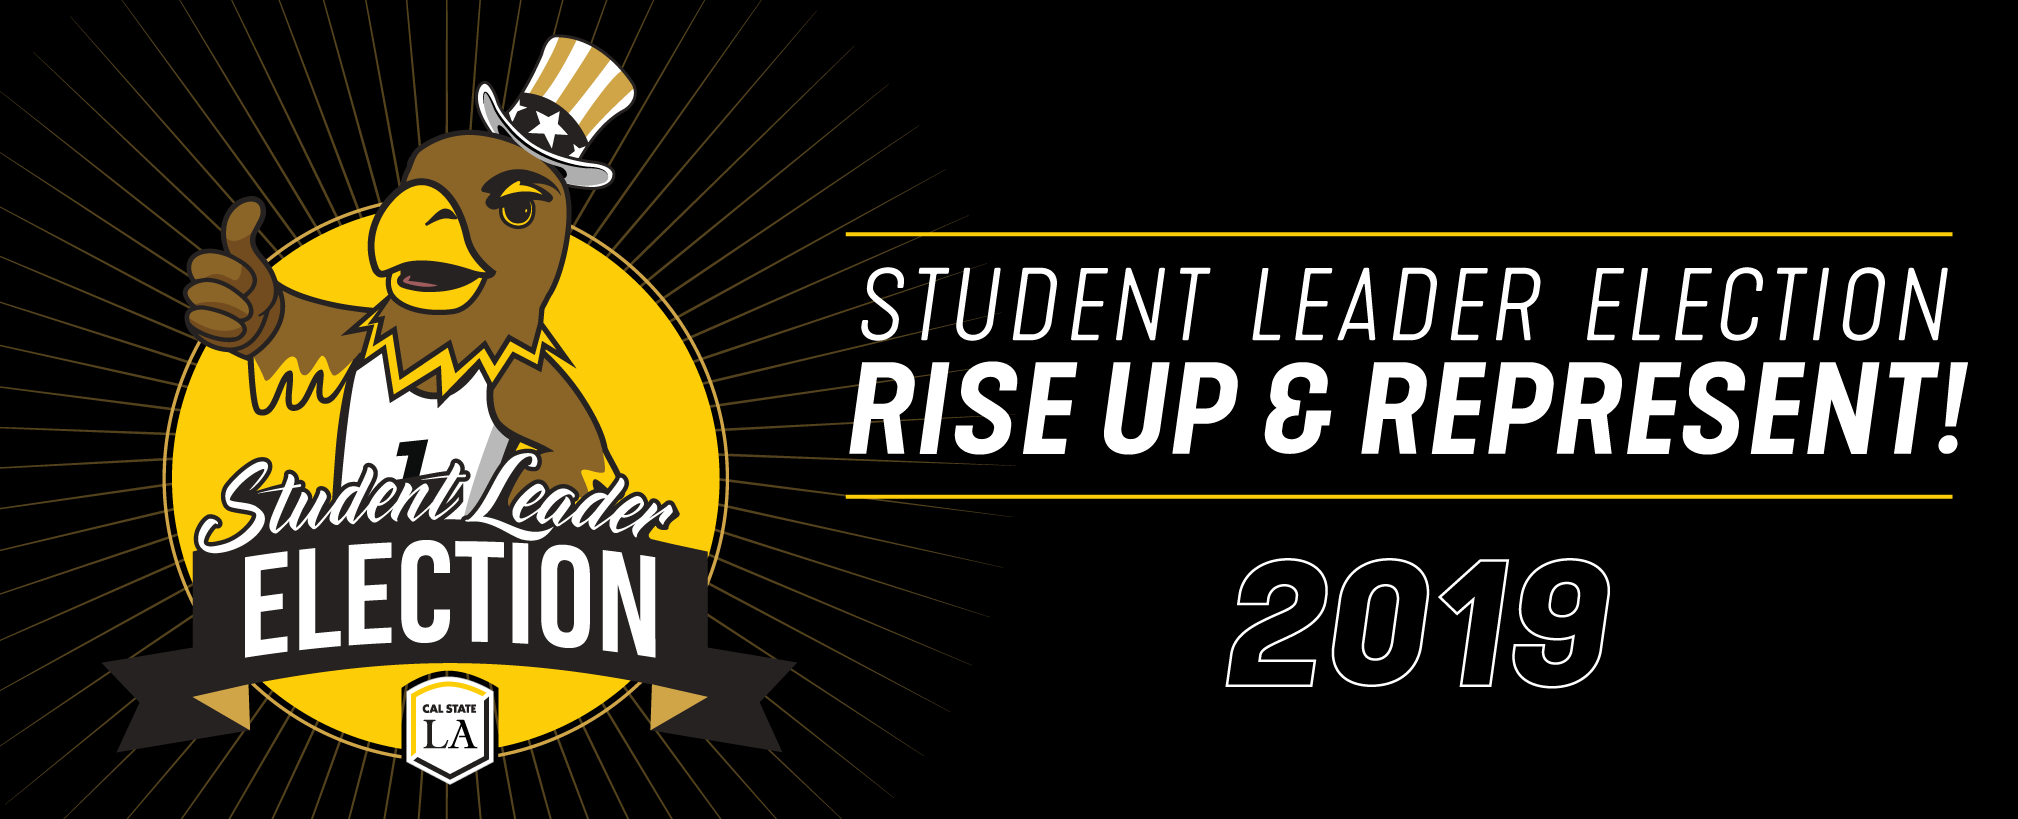 Student Leader Election